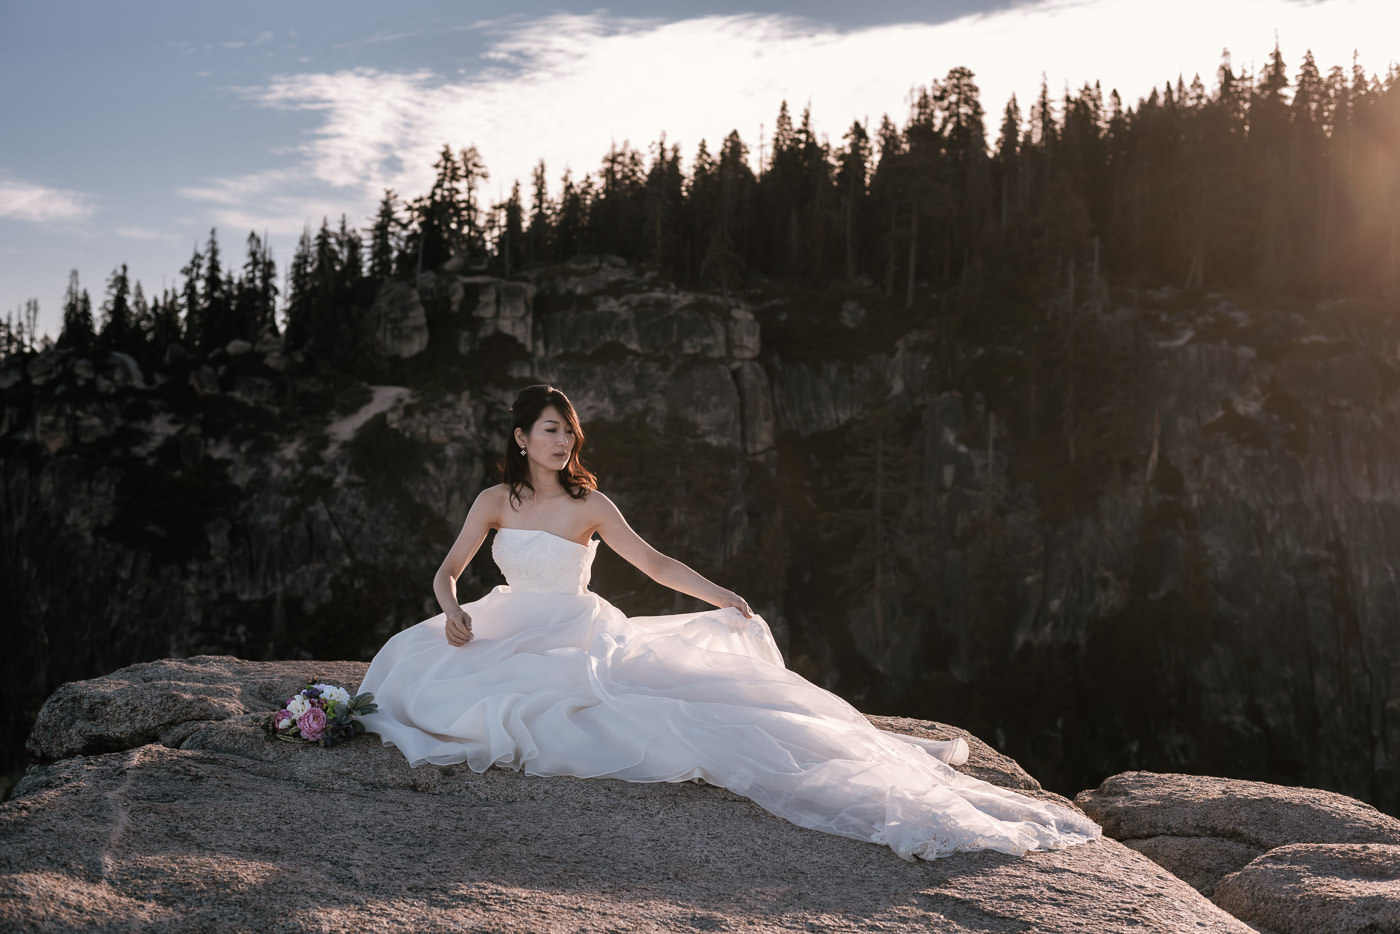 Bride fixes dress for a stunning portrait at sunrise atop a mountain in the National Parks of California.